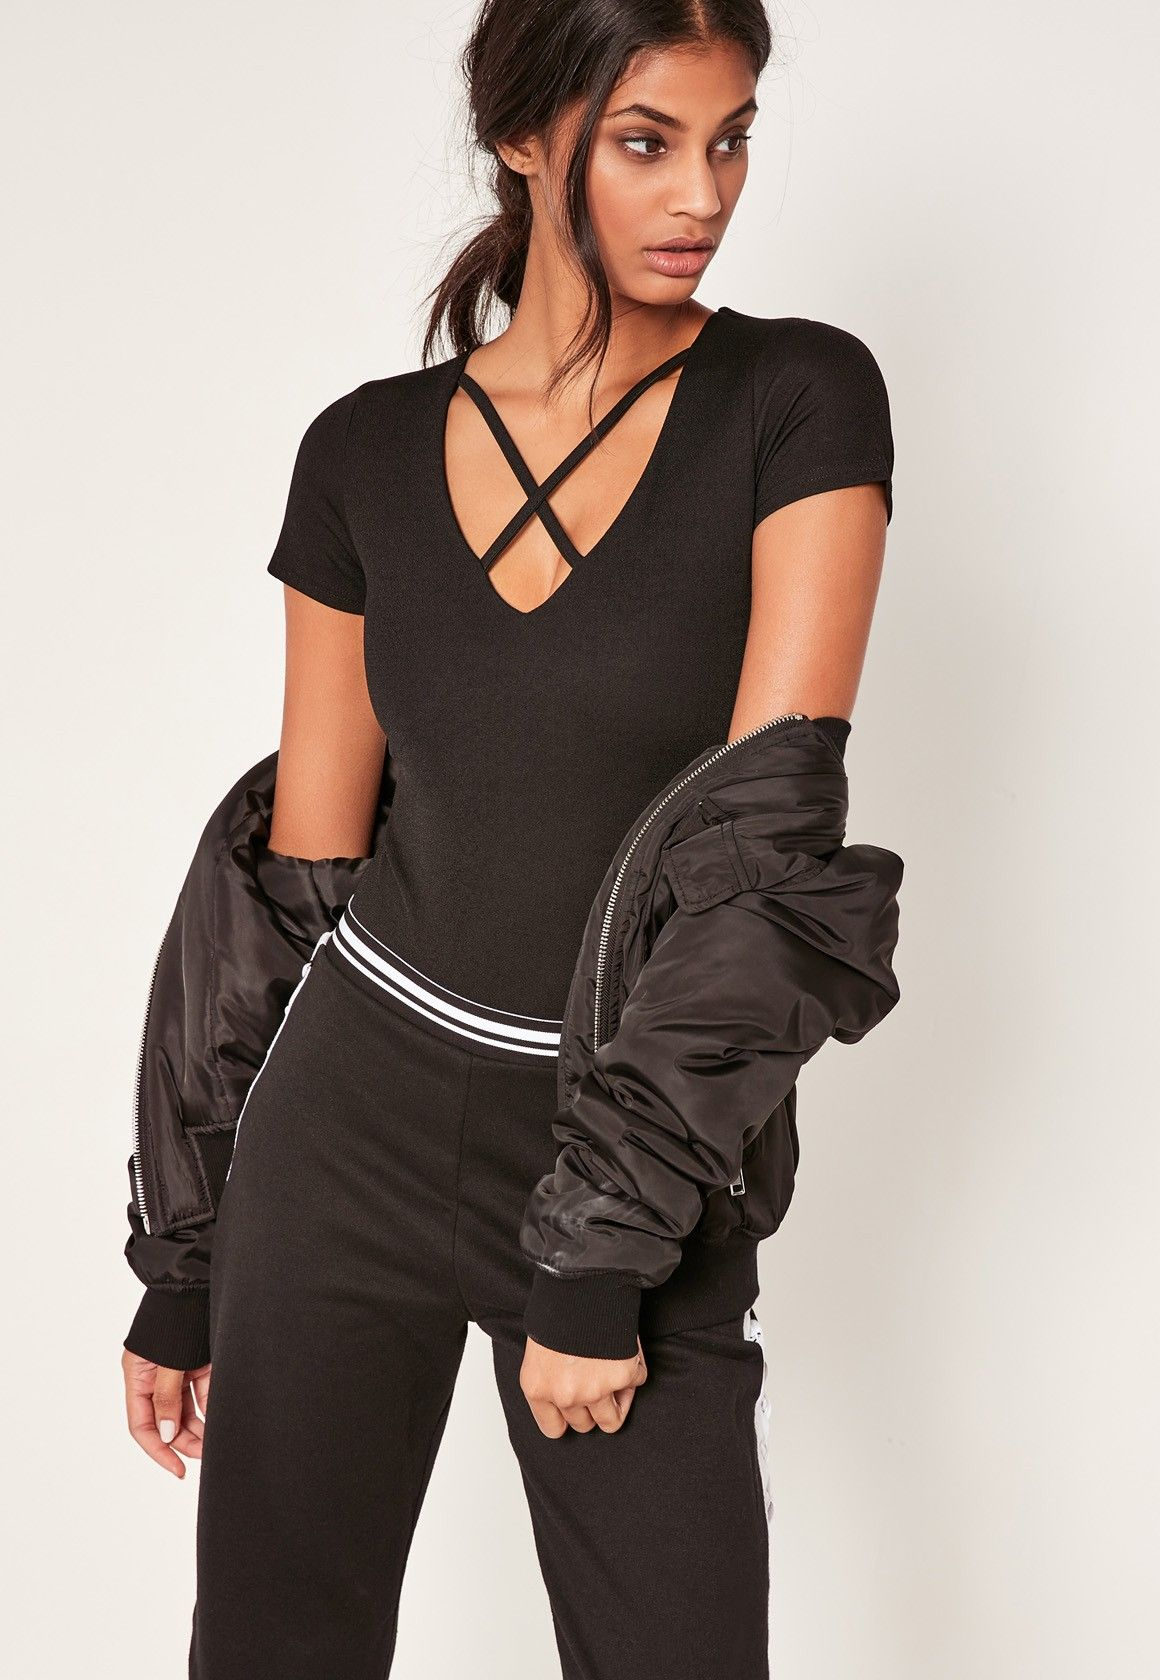 65bd123a606 ... women's tops. Missguided - Black Harness Neck Short Sleeve Bodysuit